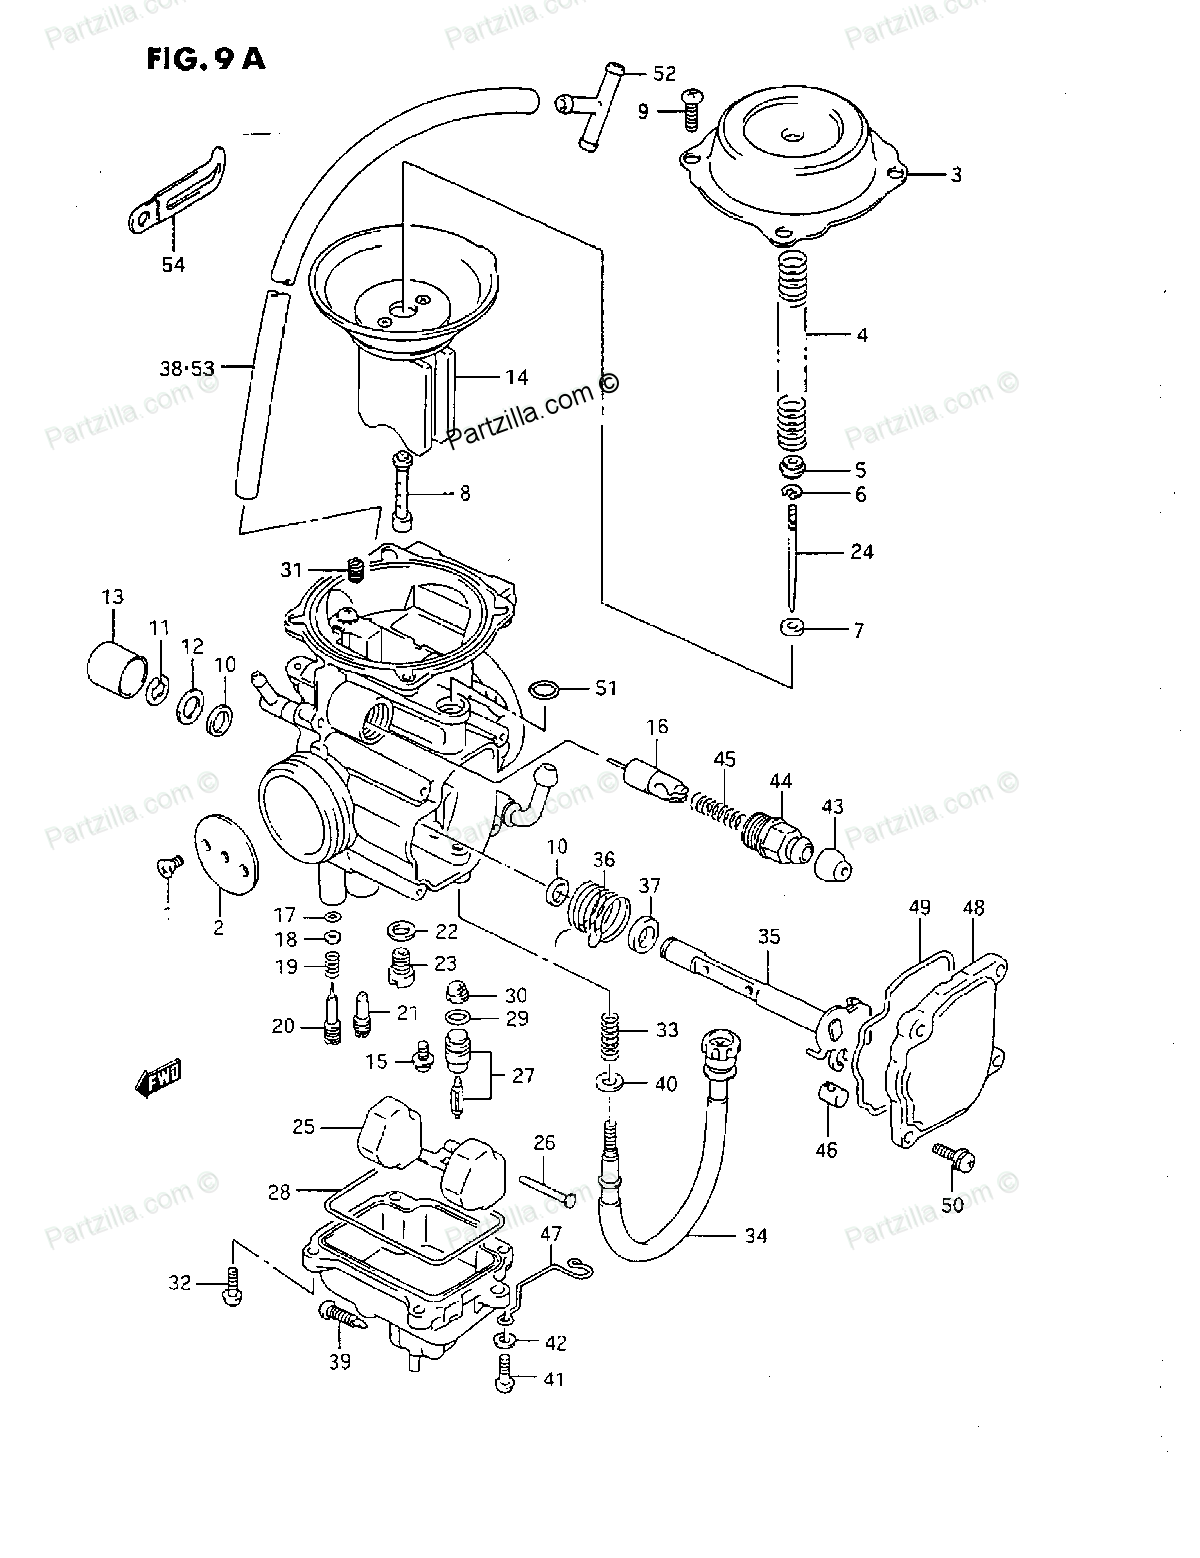 Honeywell Rth111 Thermostat Wiring Diagram